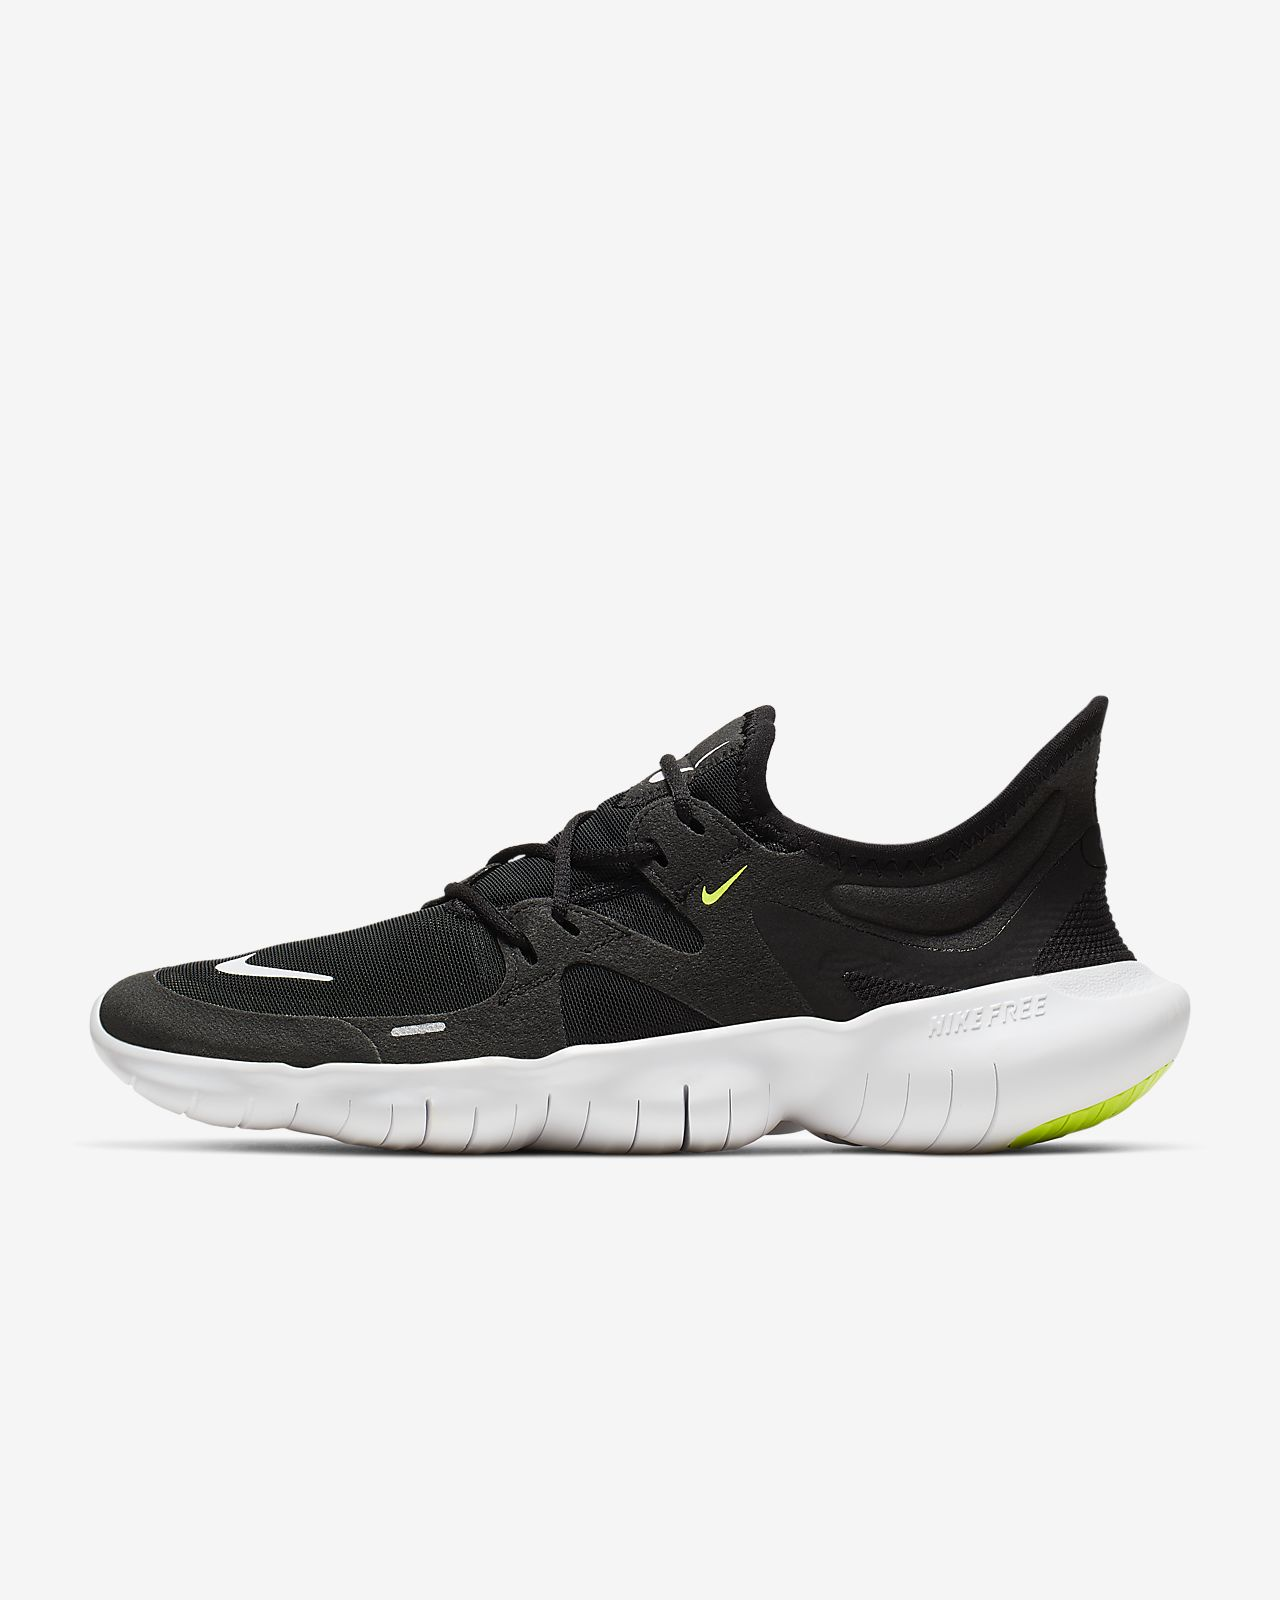 best sneakers e1ae1 42123 ... Chaussure de running Nike Free RN 5.0 pour Femme